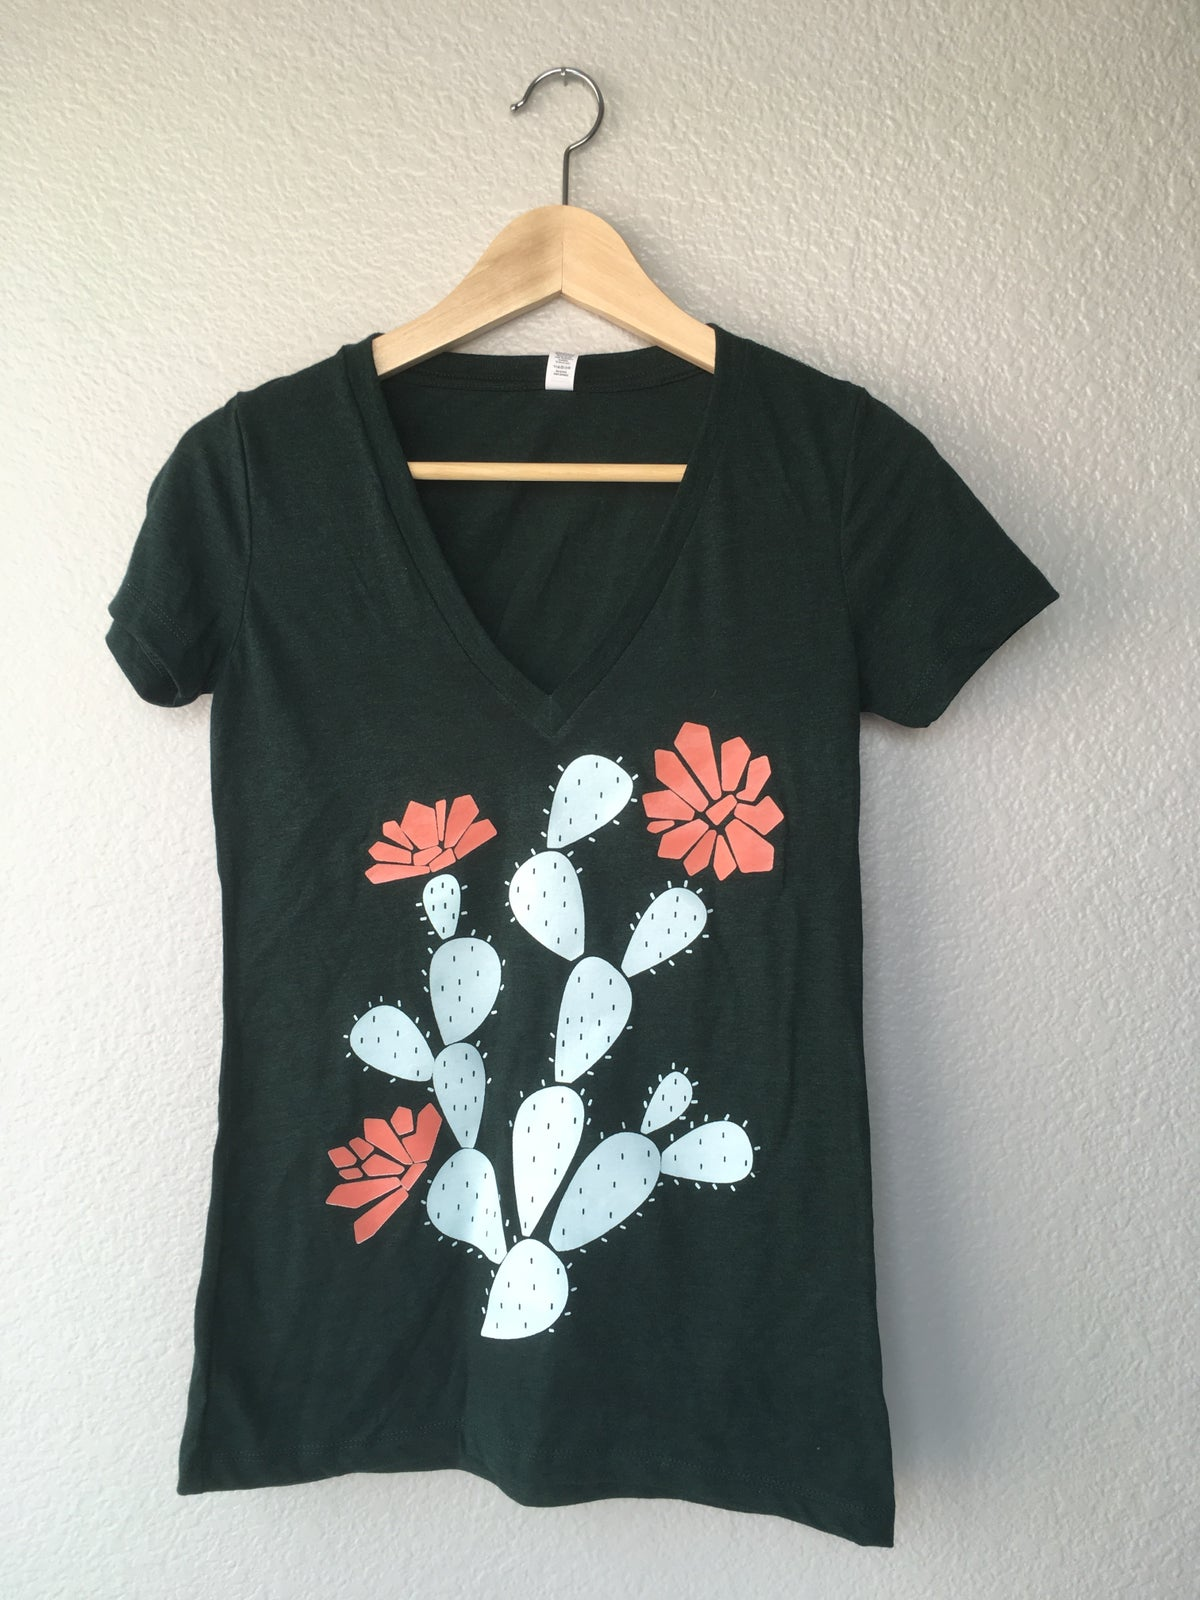 Image of PRICKLY PEAR shirt